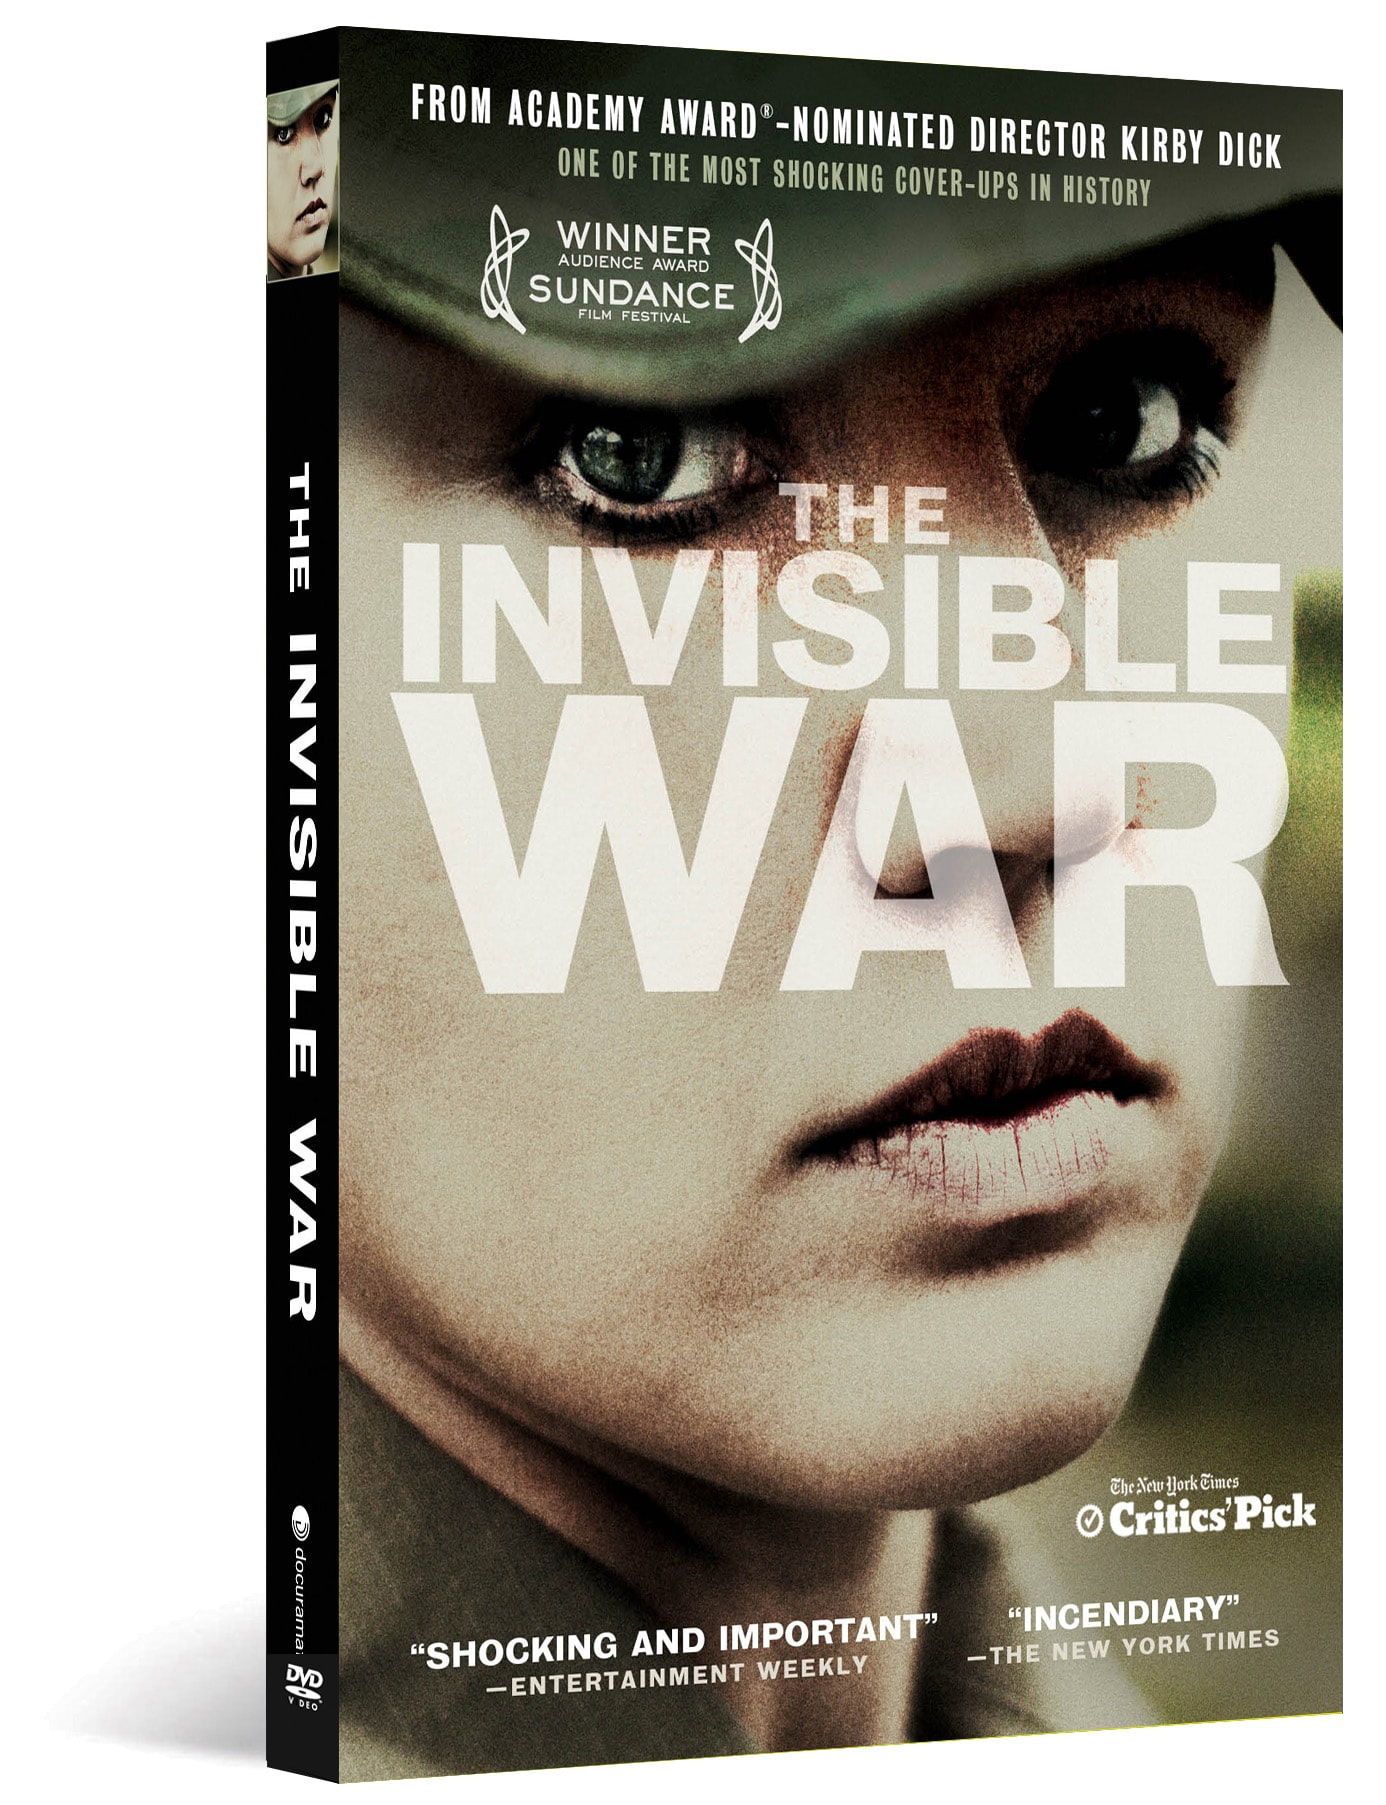 Silent No More: The Invisible War Shines Spotlight on Rape in the Military